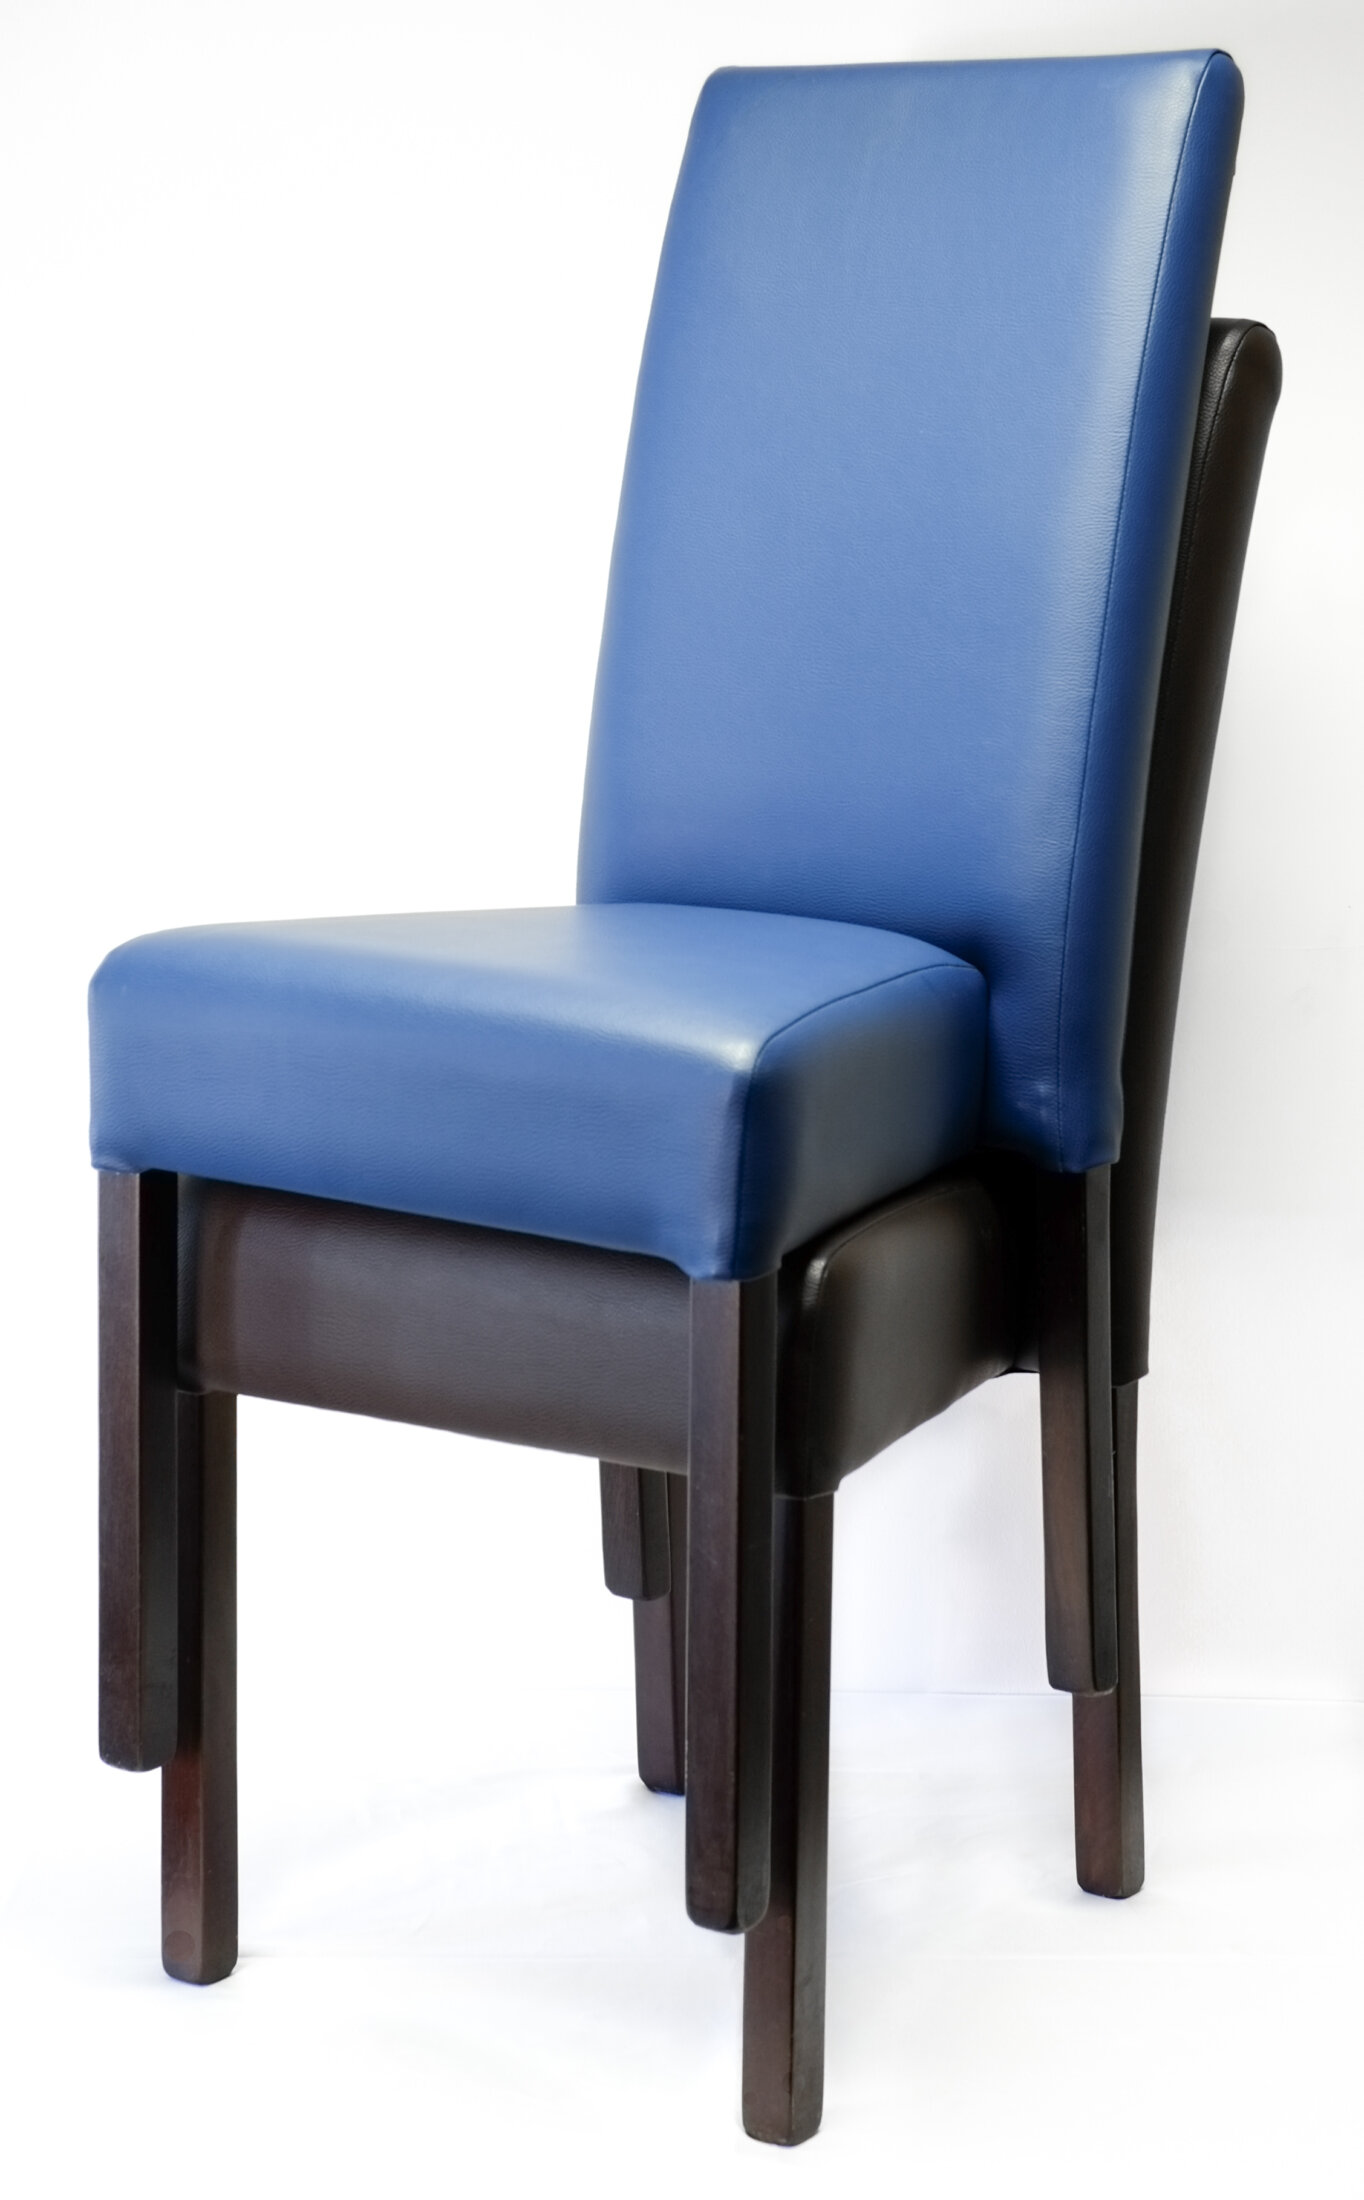 View Stacking Chairs category